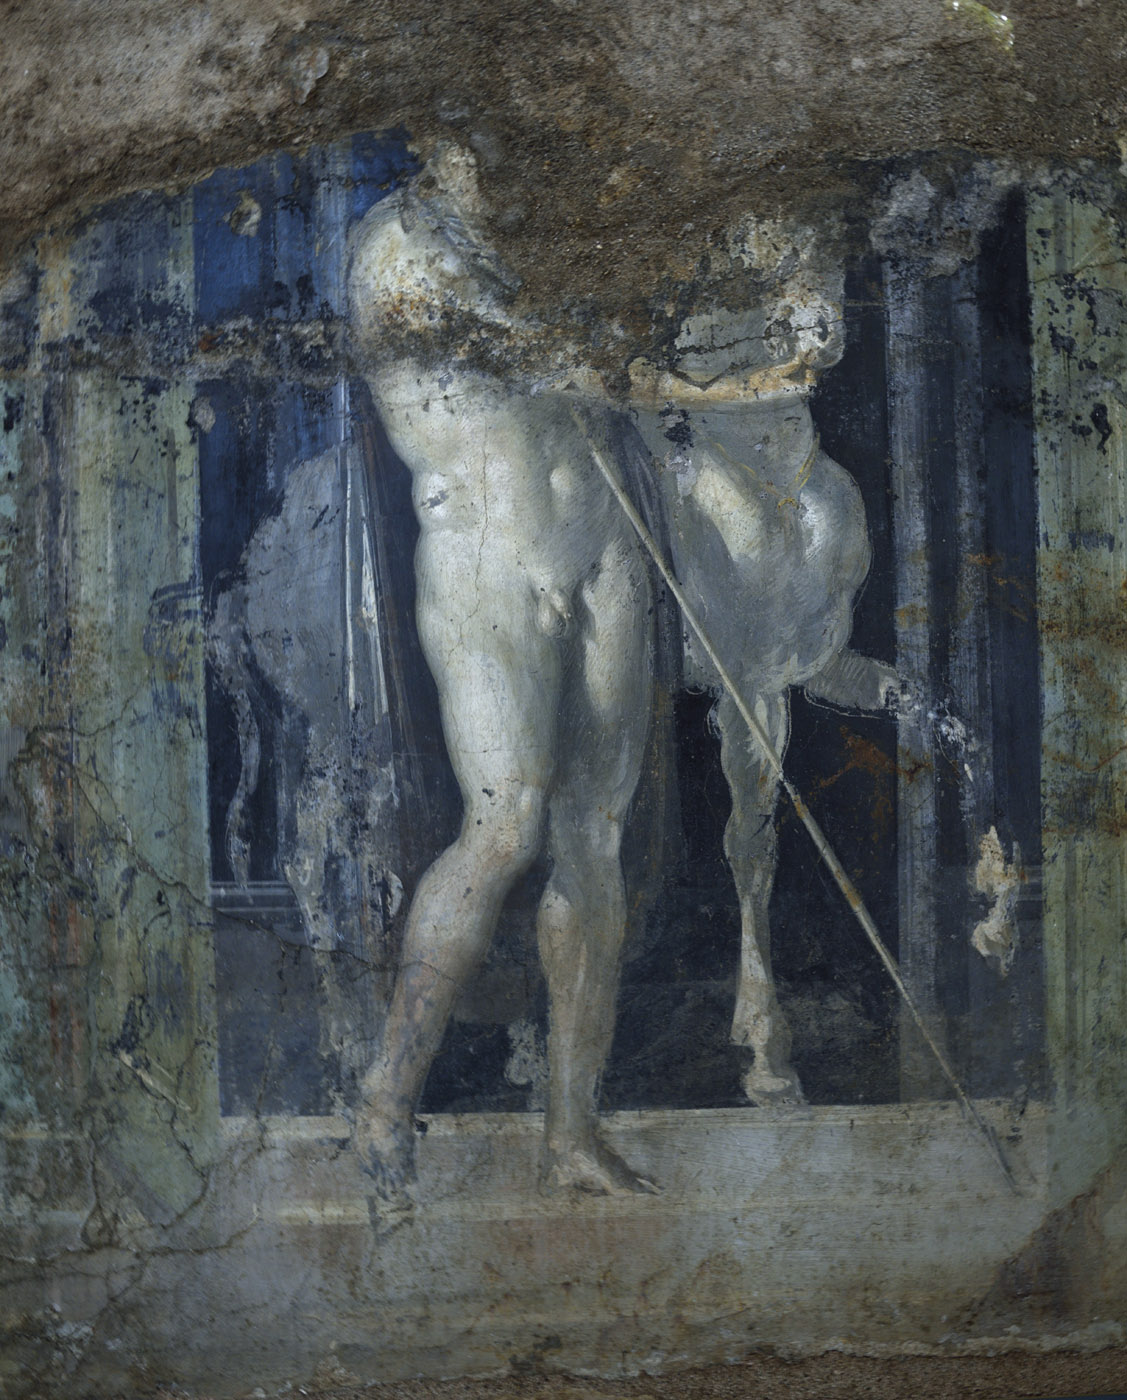 Castor or Pollux. Neronian age. Pompeii, Great Gymnasium